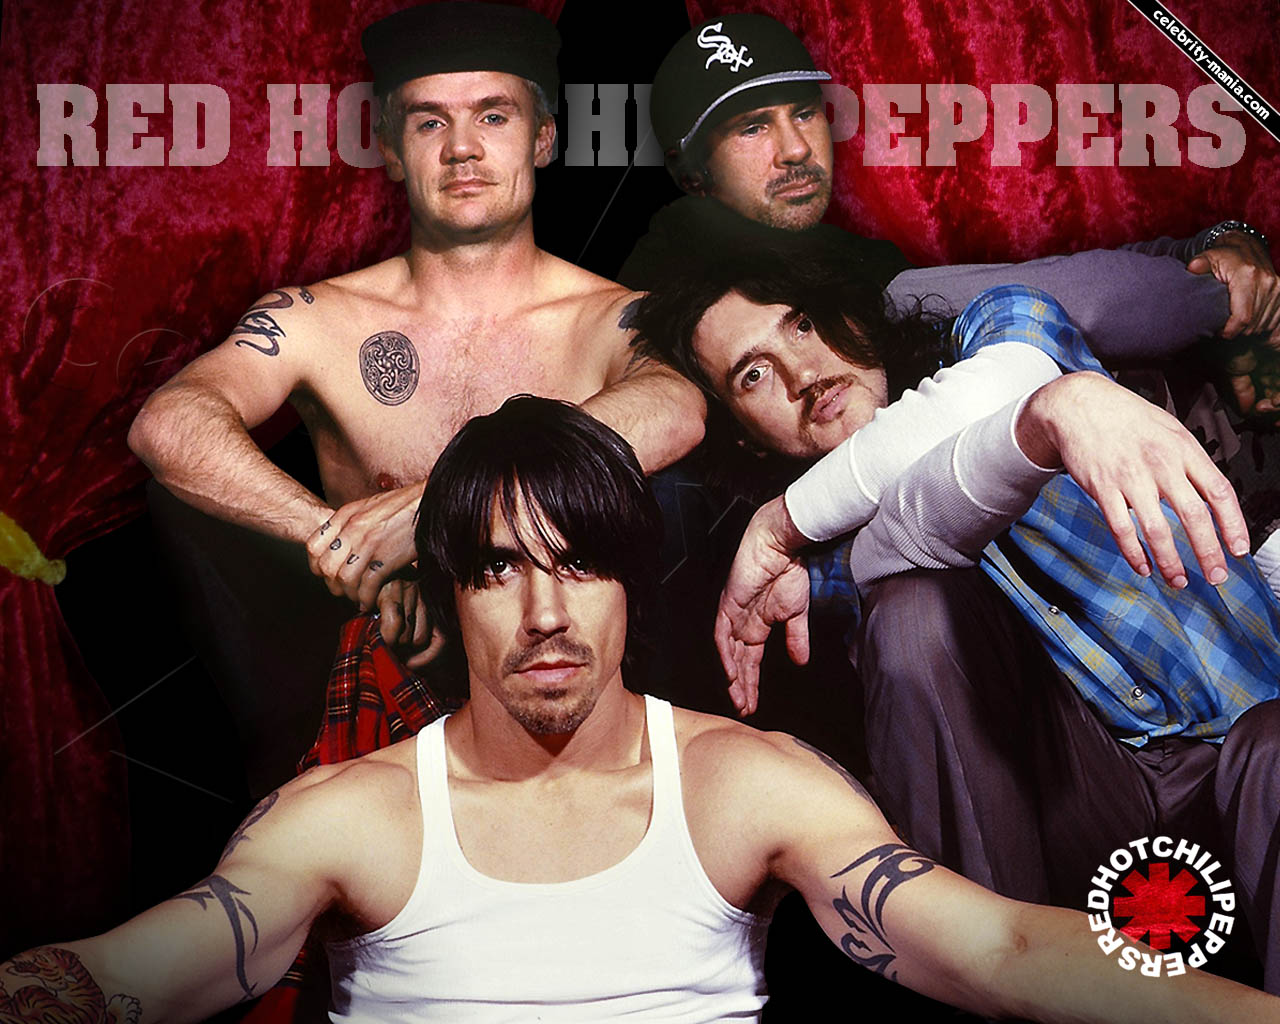 red hot chilli peppers - photo #14